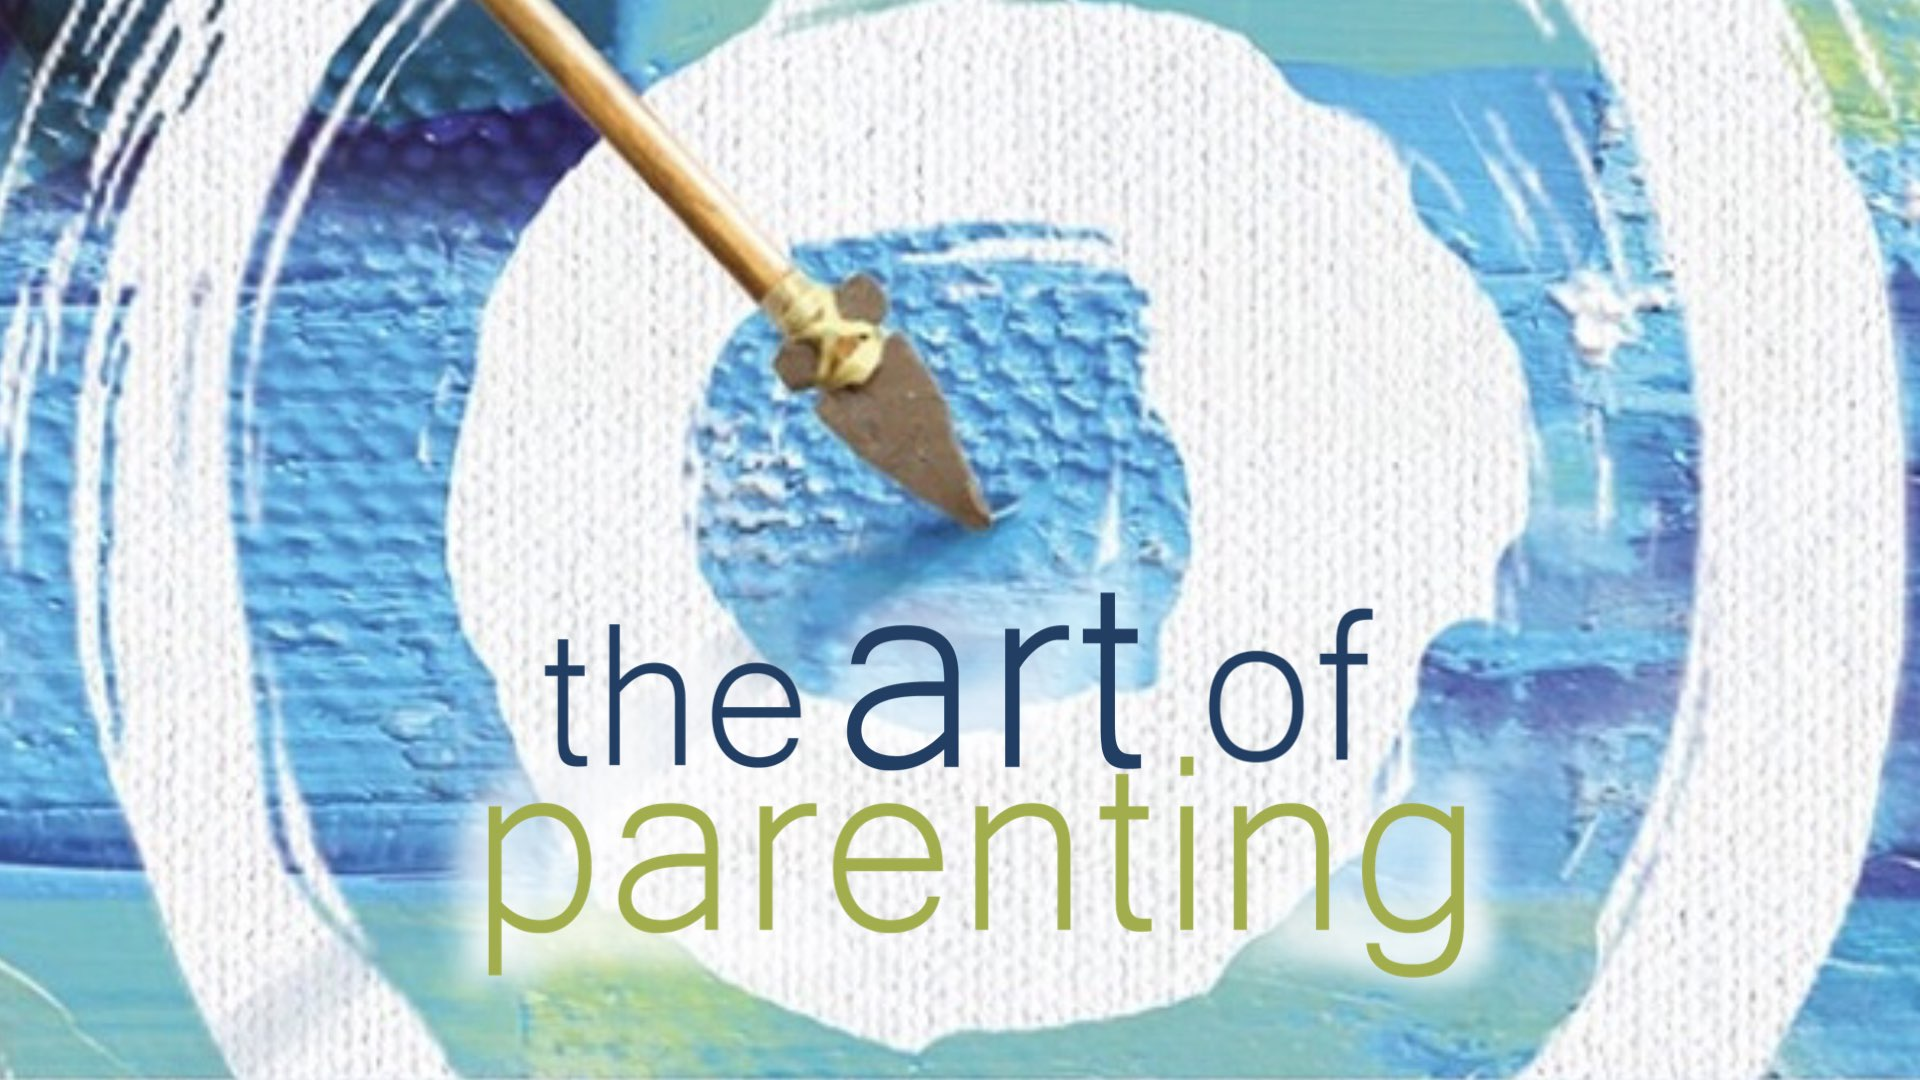 Art of Parenting Discipleship Class - Dates: Wednesdays, beginning September 11, 2019 - October 30, 2019Time: 6 to 7:30pmPlace: FUSION CenterKids activities for Birth - 12th Grade are offered with no pre-registration. If you do have kids you are encouraged to come a few minutes early on the first day of class to help your kids get to their class.